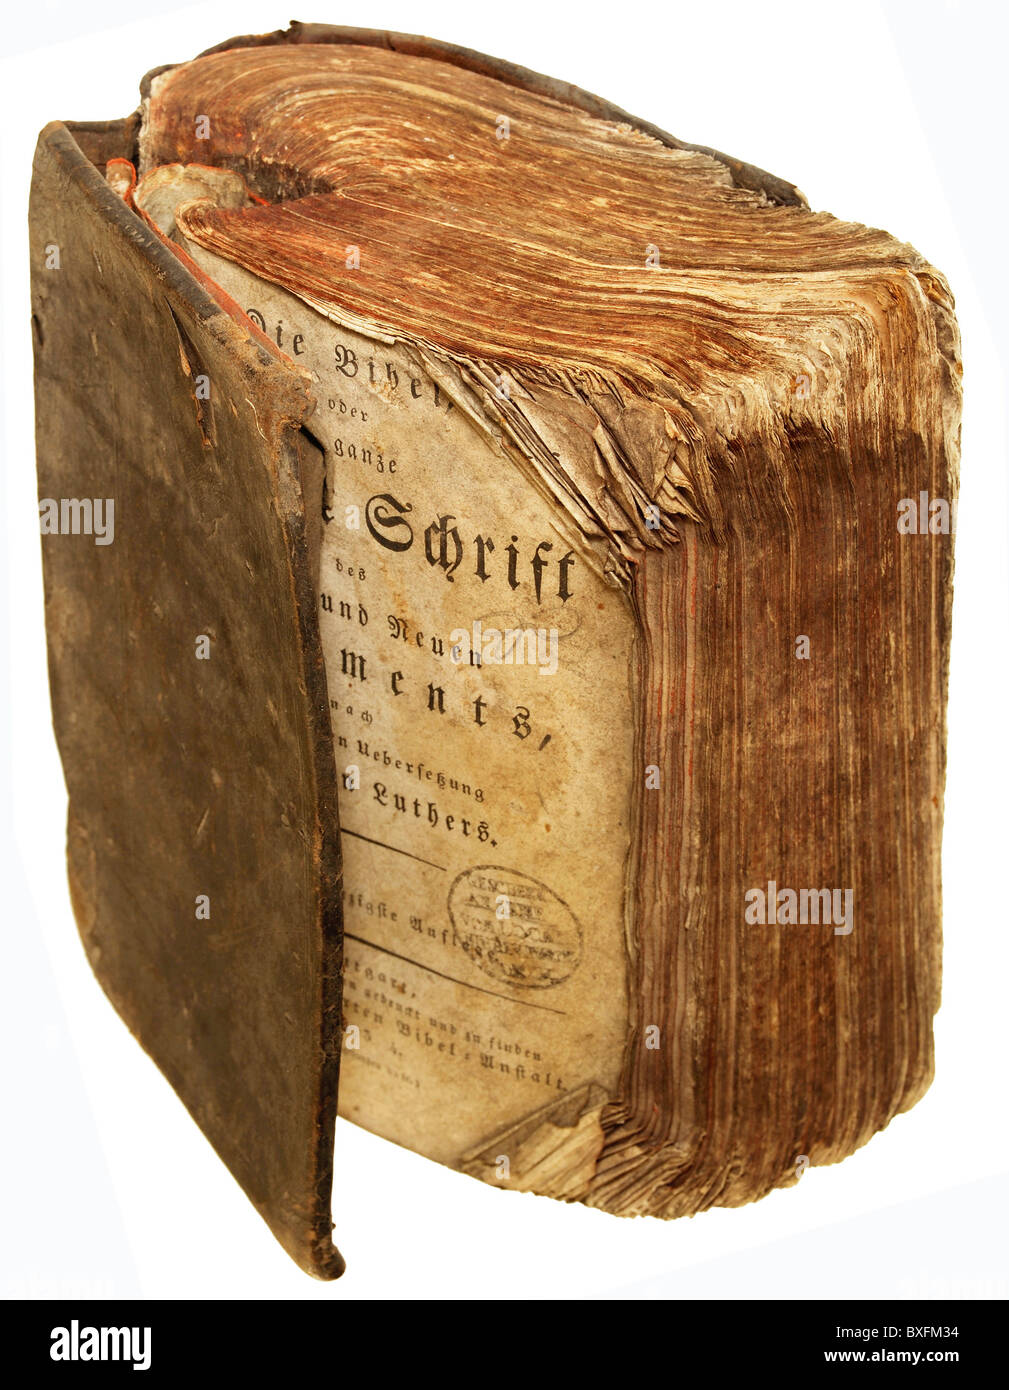 literature, books, The Bible, Old and New Testament, Germany, 1834, Additional-Rights-Clearences-NA - Stock Image